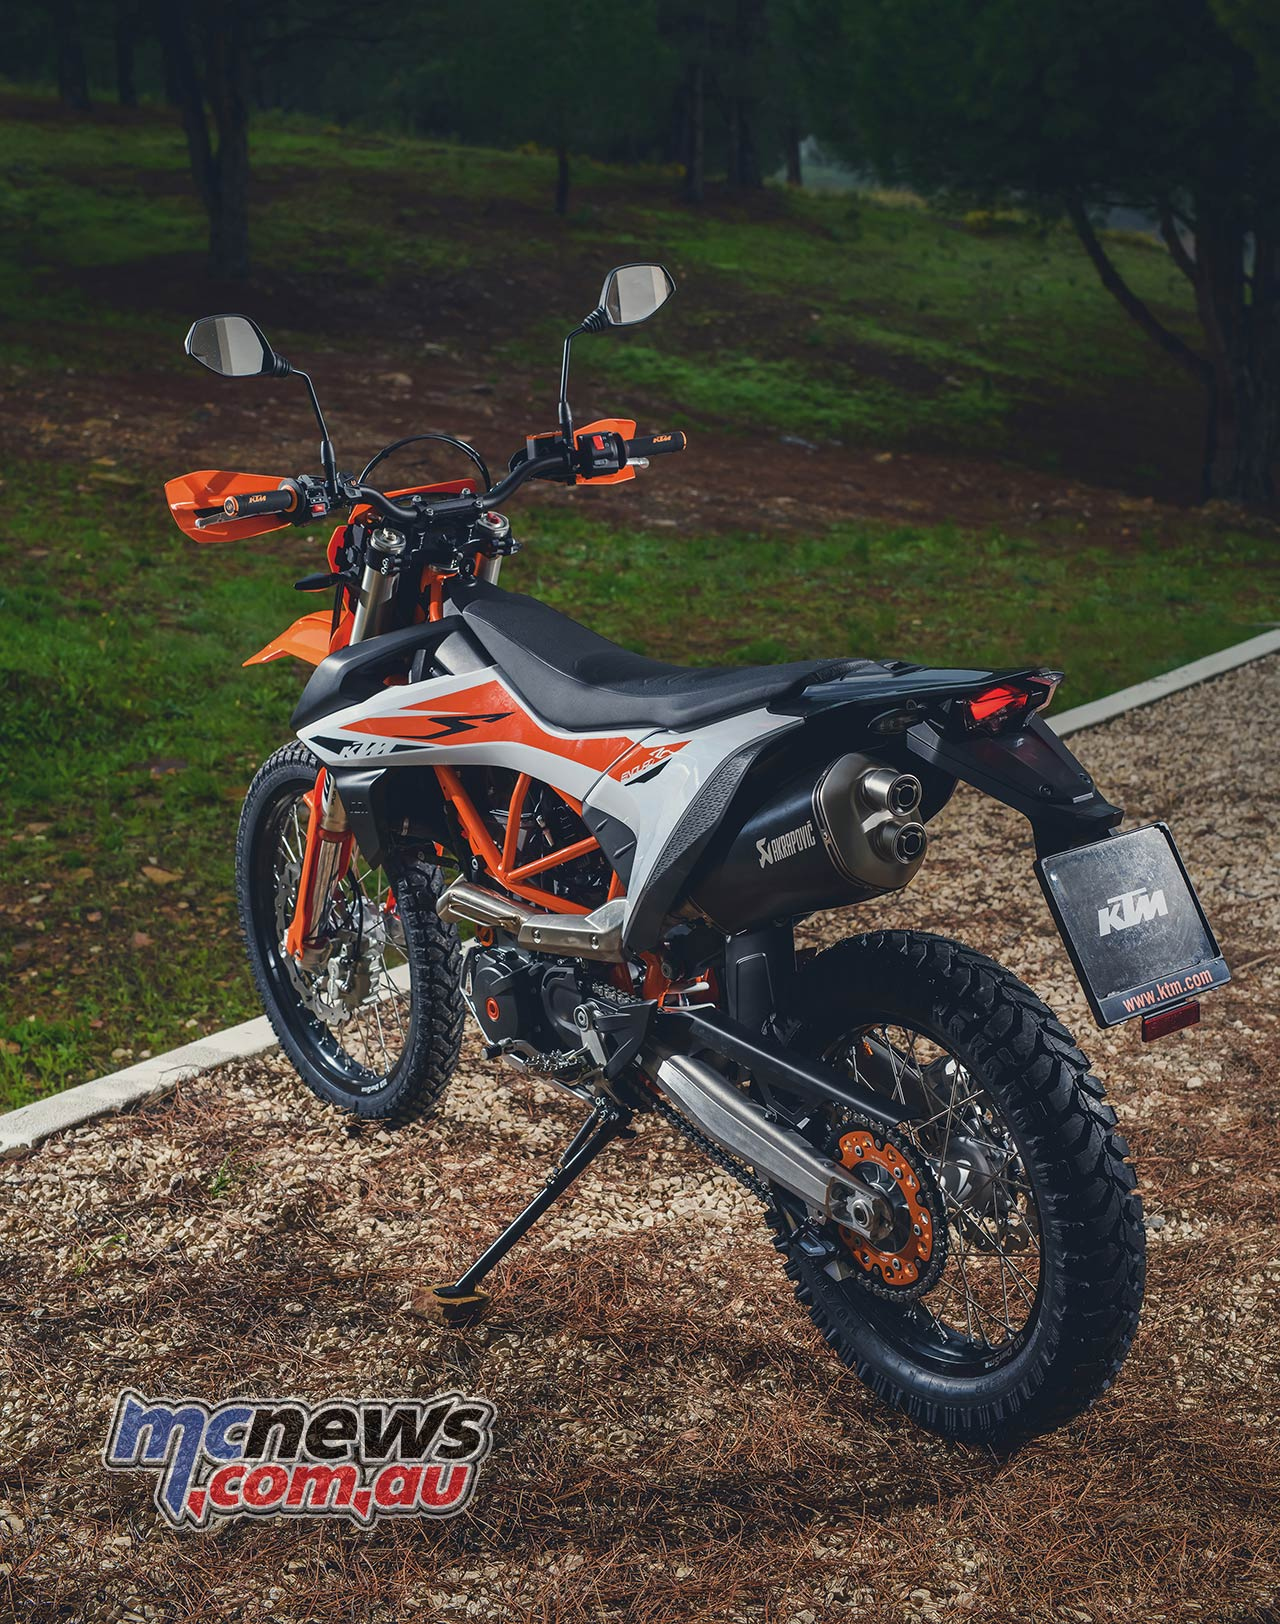 2019 ktm 690 enduro r reviewed motorcycle test mcnews. Black Bedroom Furniture Sets. Home Design Ideas